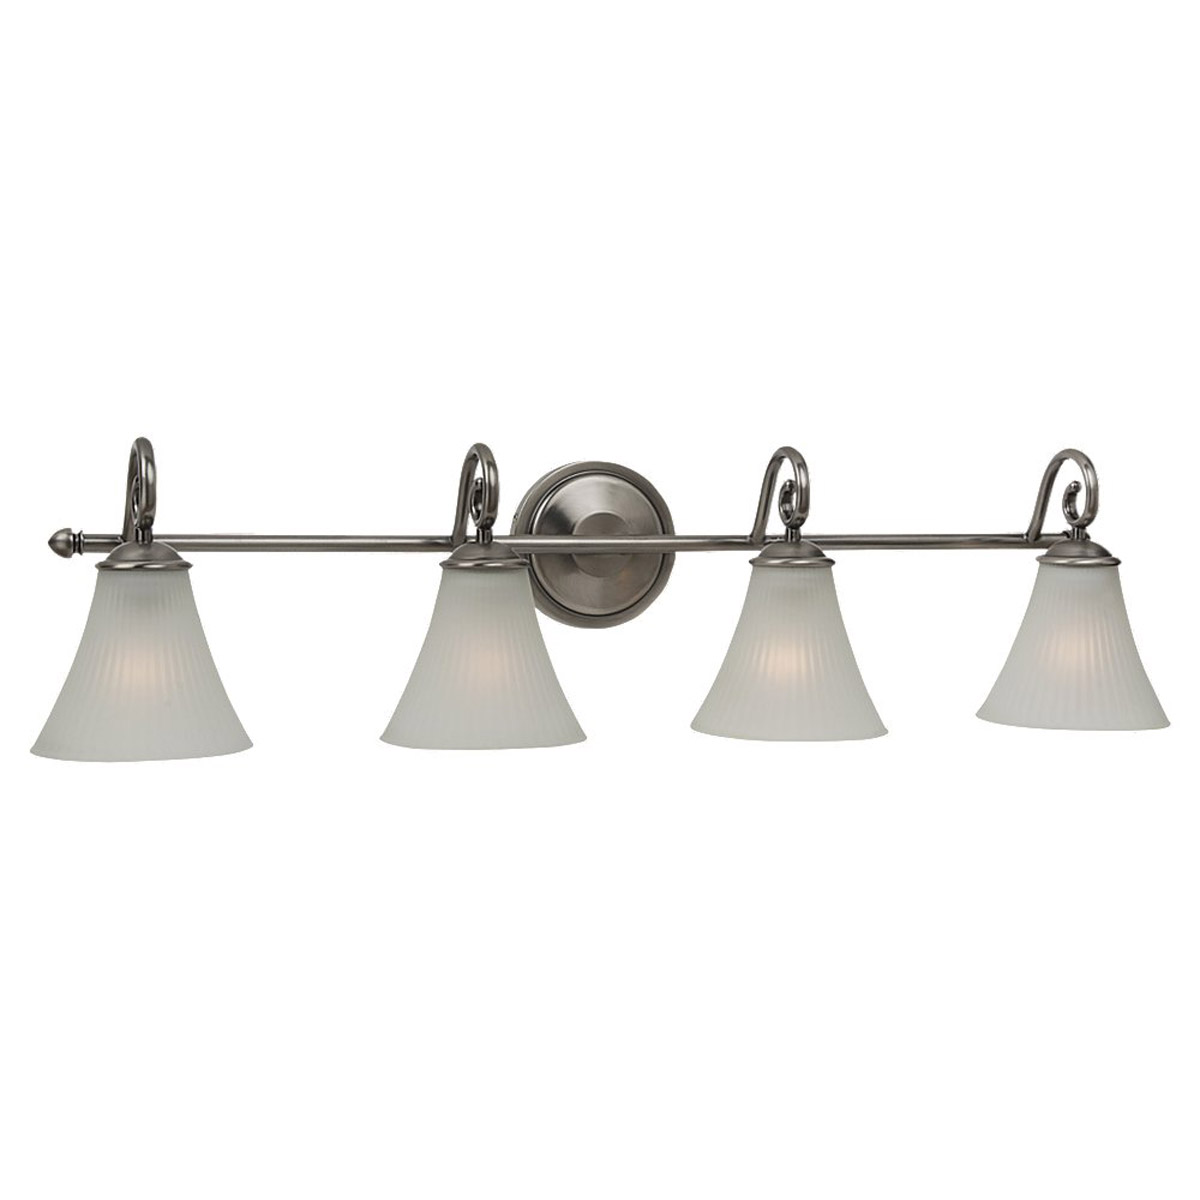 Sea Gull Lighting Joliet 4 Light Bath Vanity in Antique Brushed Nickel 44938-965